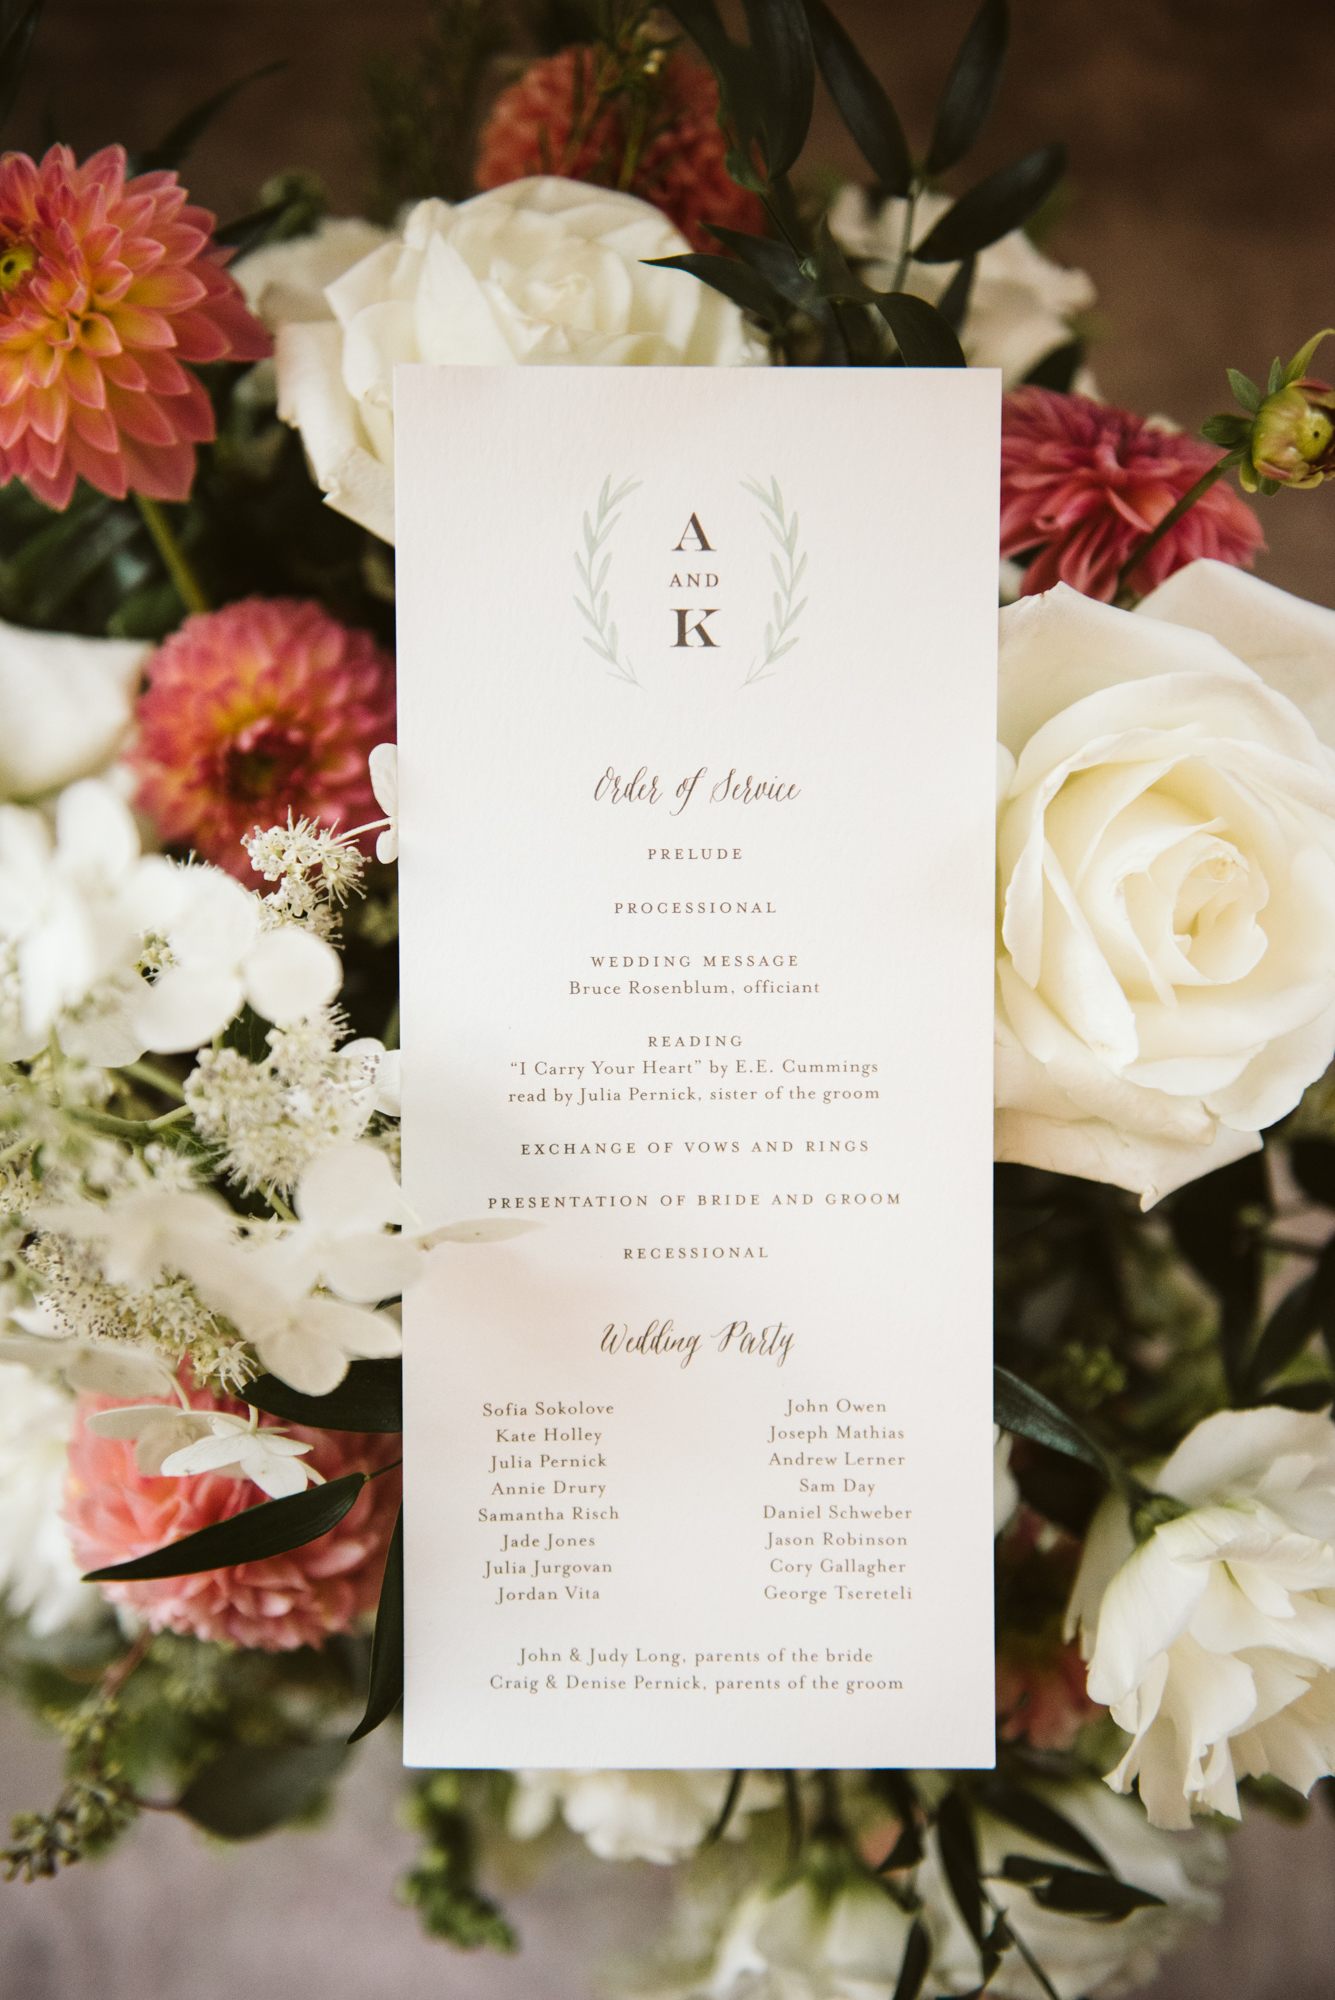 Elegant, Columbia Country Club, Chevy Chase Maryland, Baltimore Wedding Photographer, Classic, Timeless Minted Wedding Programs, Coral Dahlias